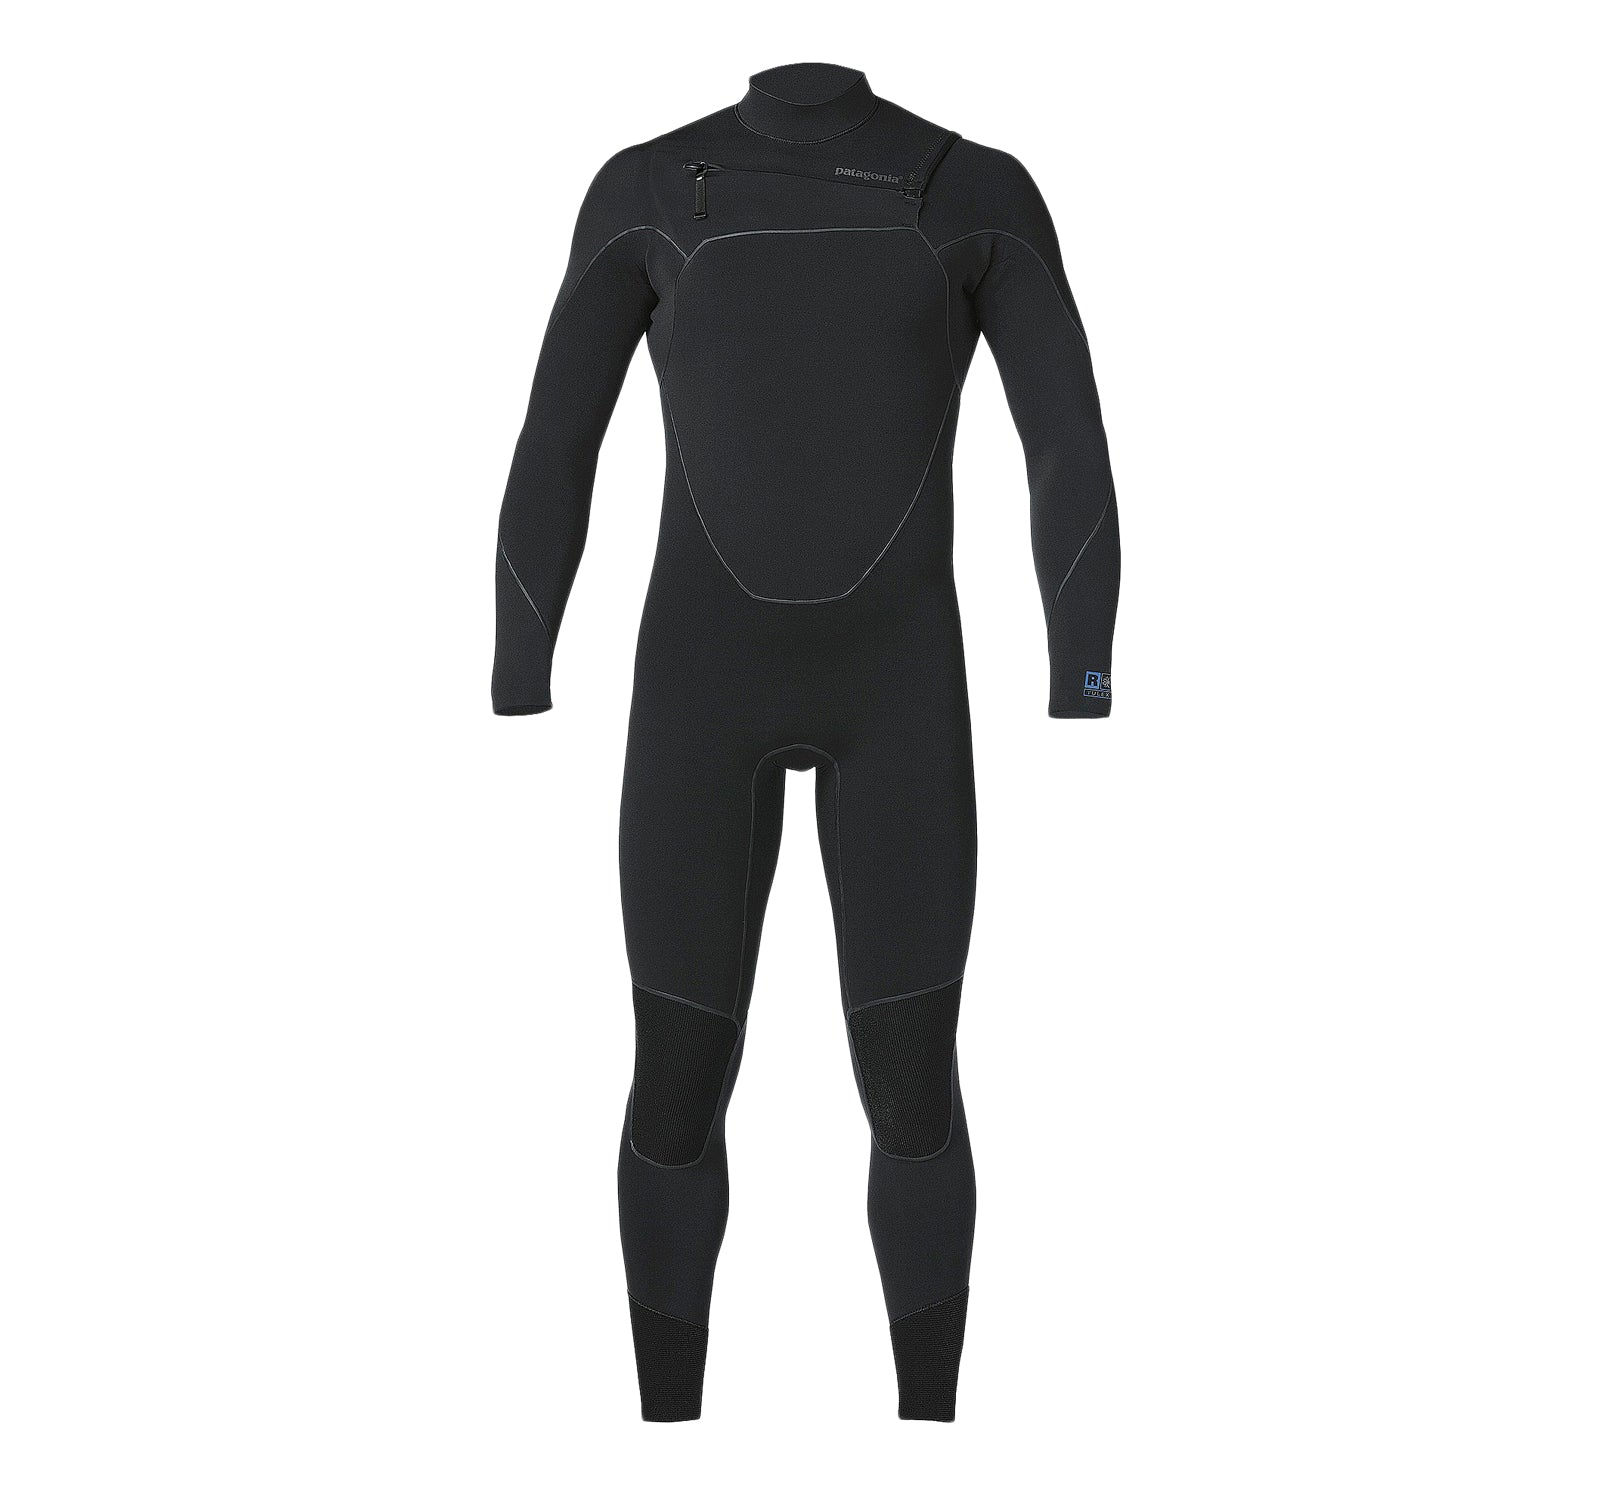 Patagonia R1 Yulex Chest-Zip Men's Fullsuit Wetsuit